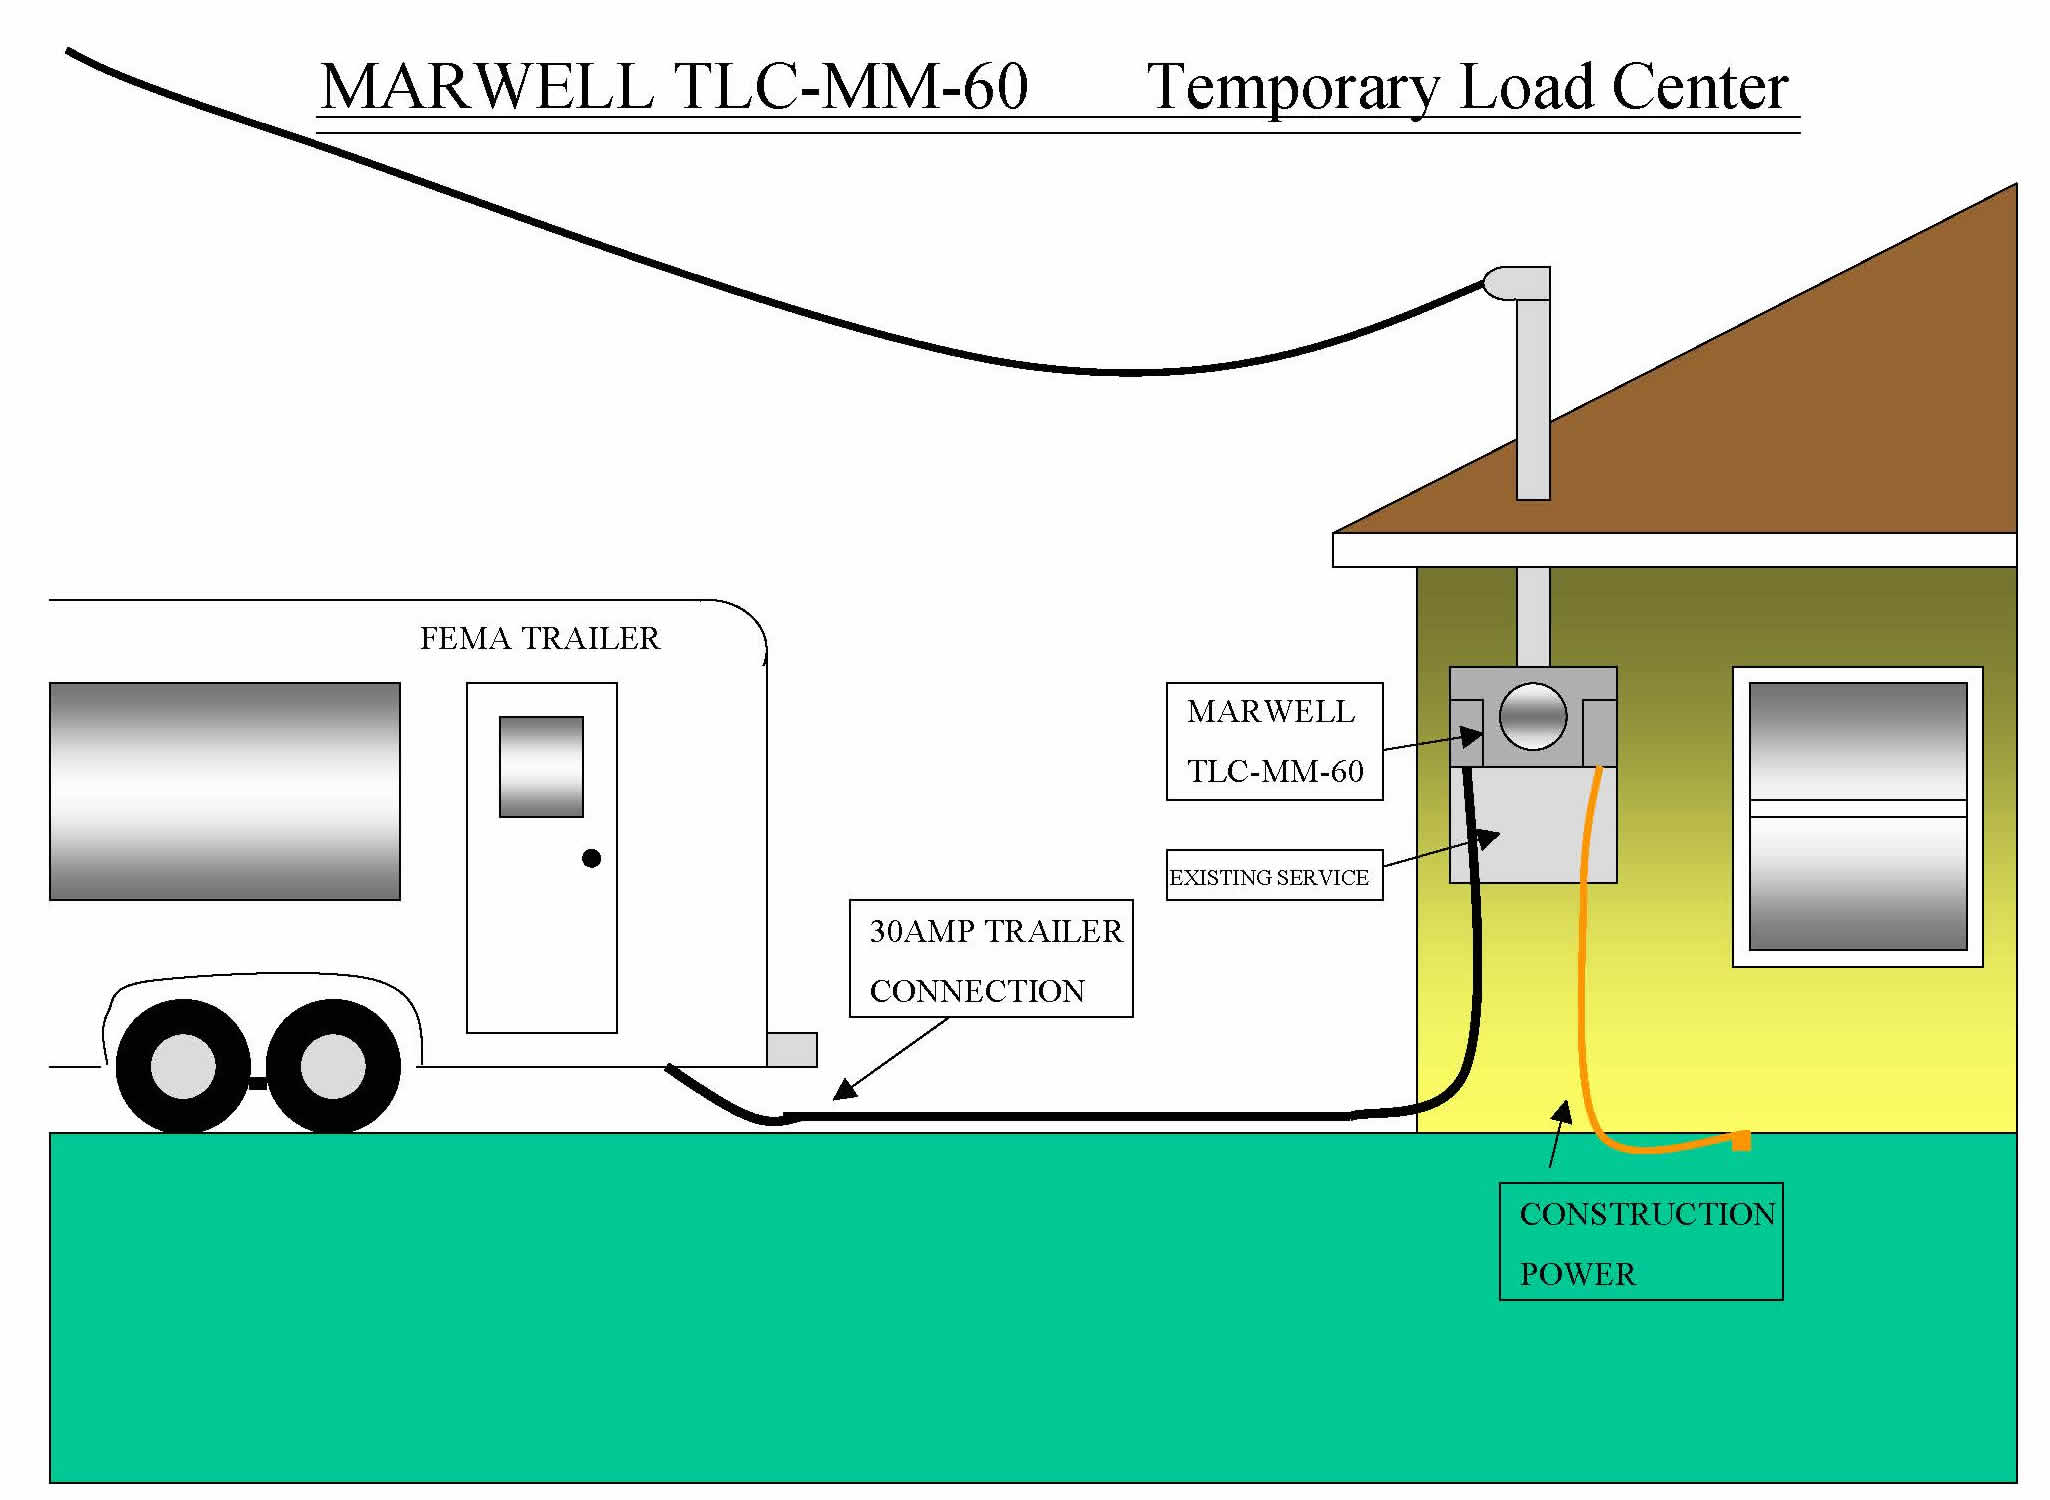 Marwell Corp 30 Amp Male Plug Wiring Diagram 1800 Tlc 120 Rv This Adapter Was Originally Designed For Use With The Fema Trailers During Katrina Disaster What Does Is Allows